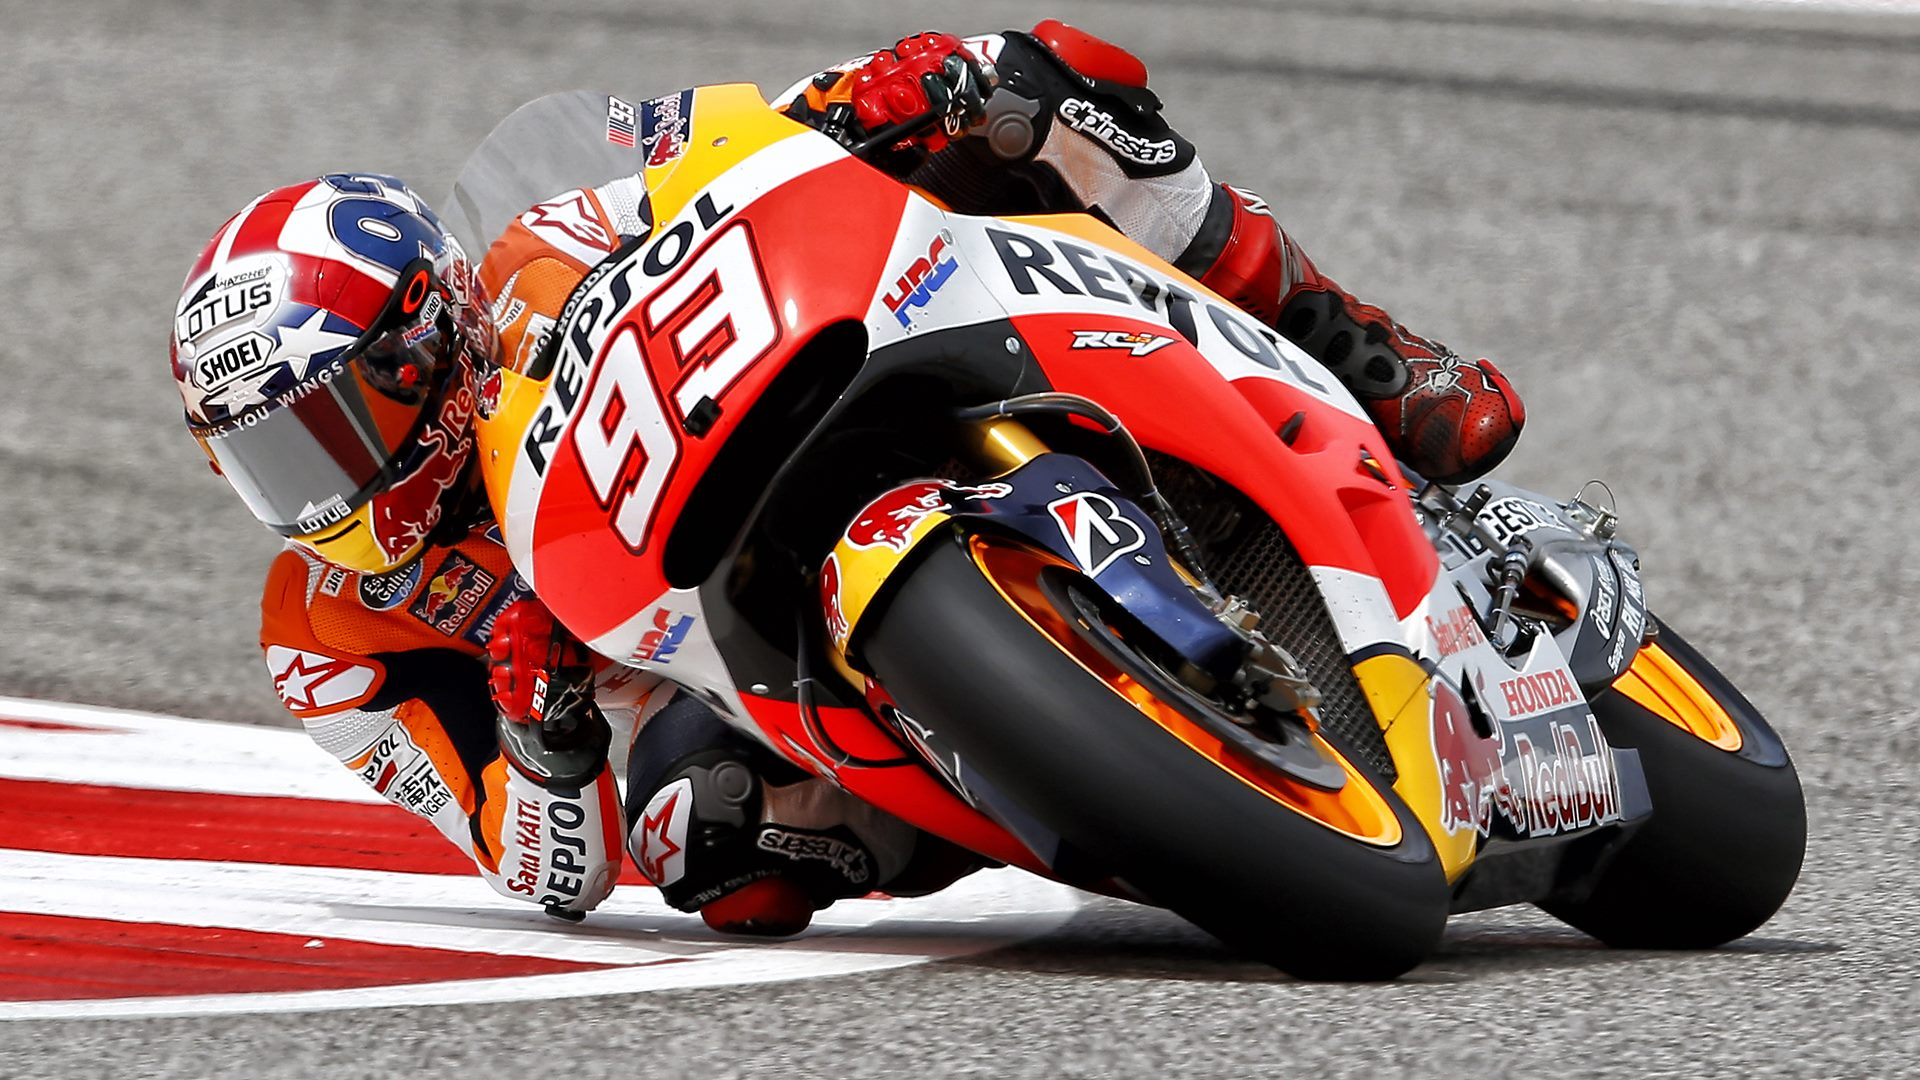 marc marquez hd wallpaper - motogp cota austin texas